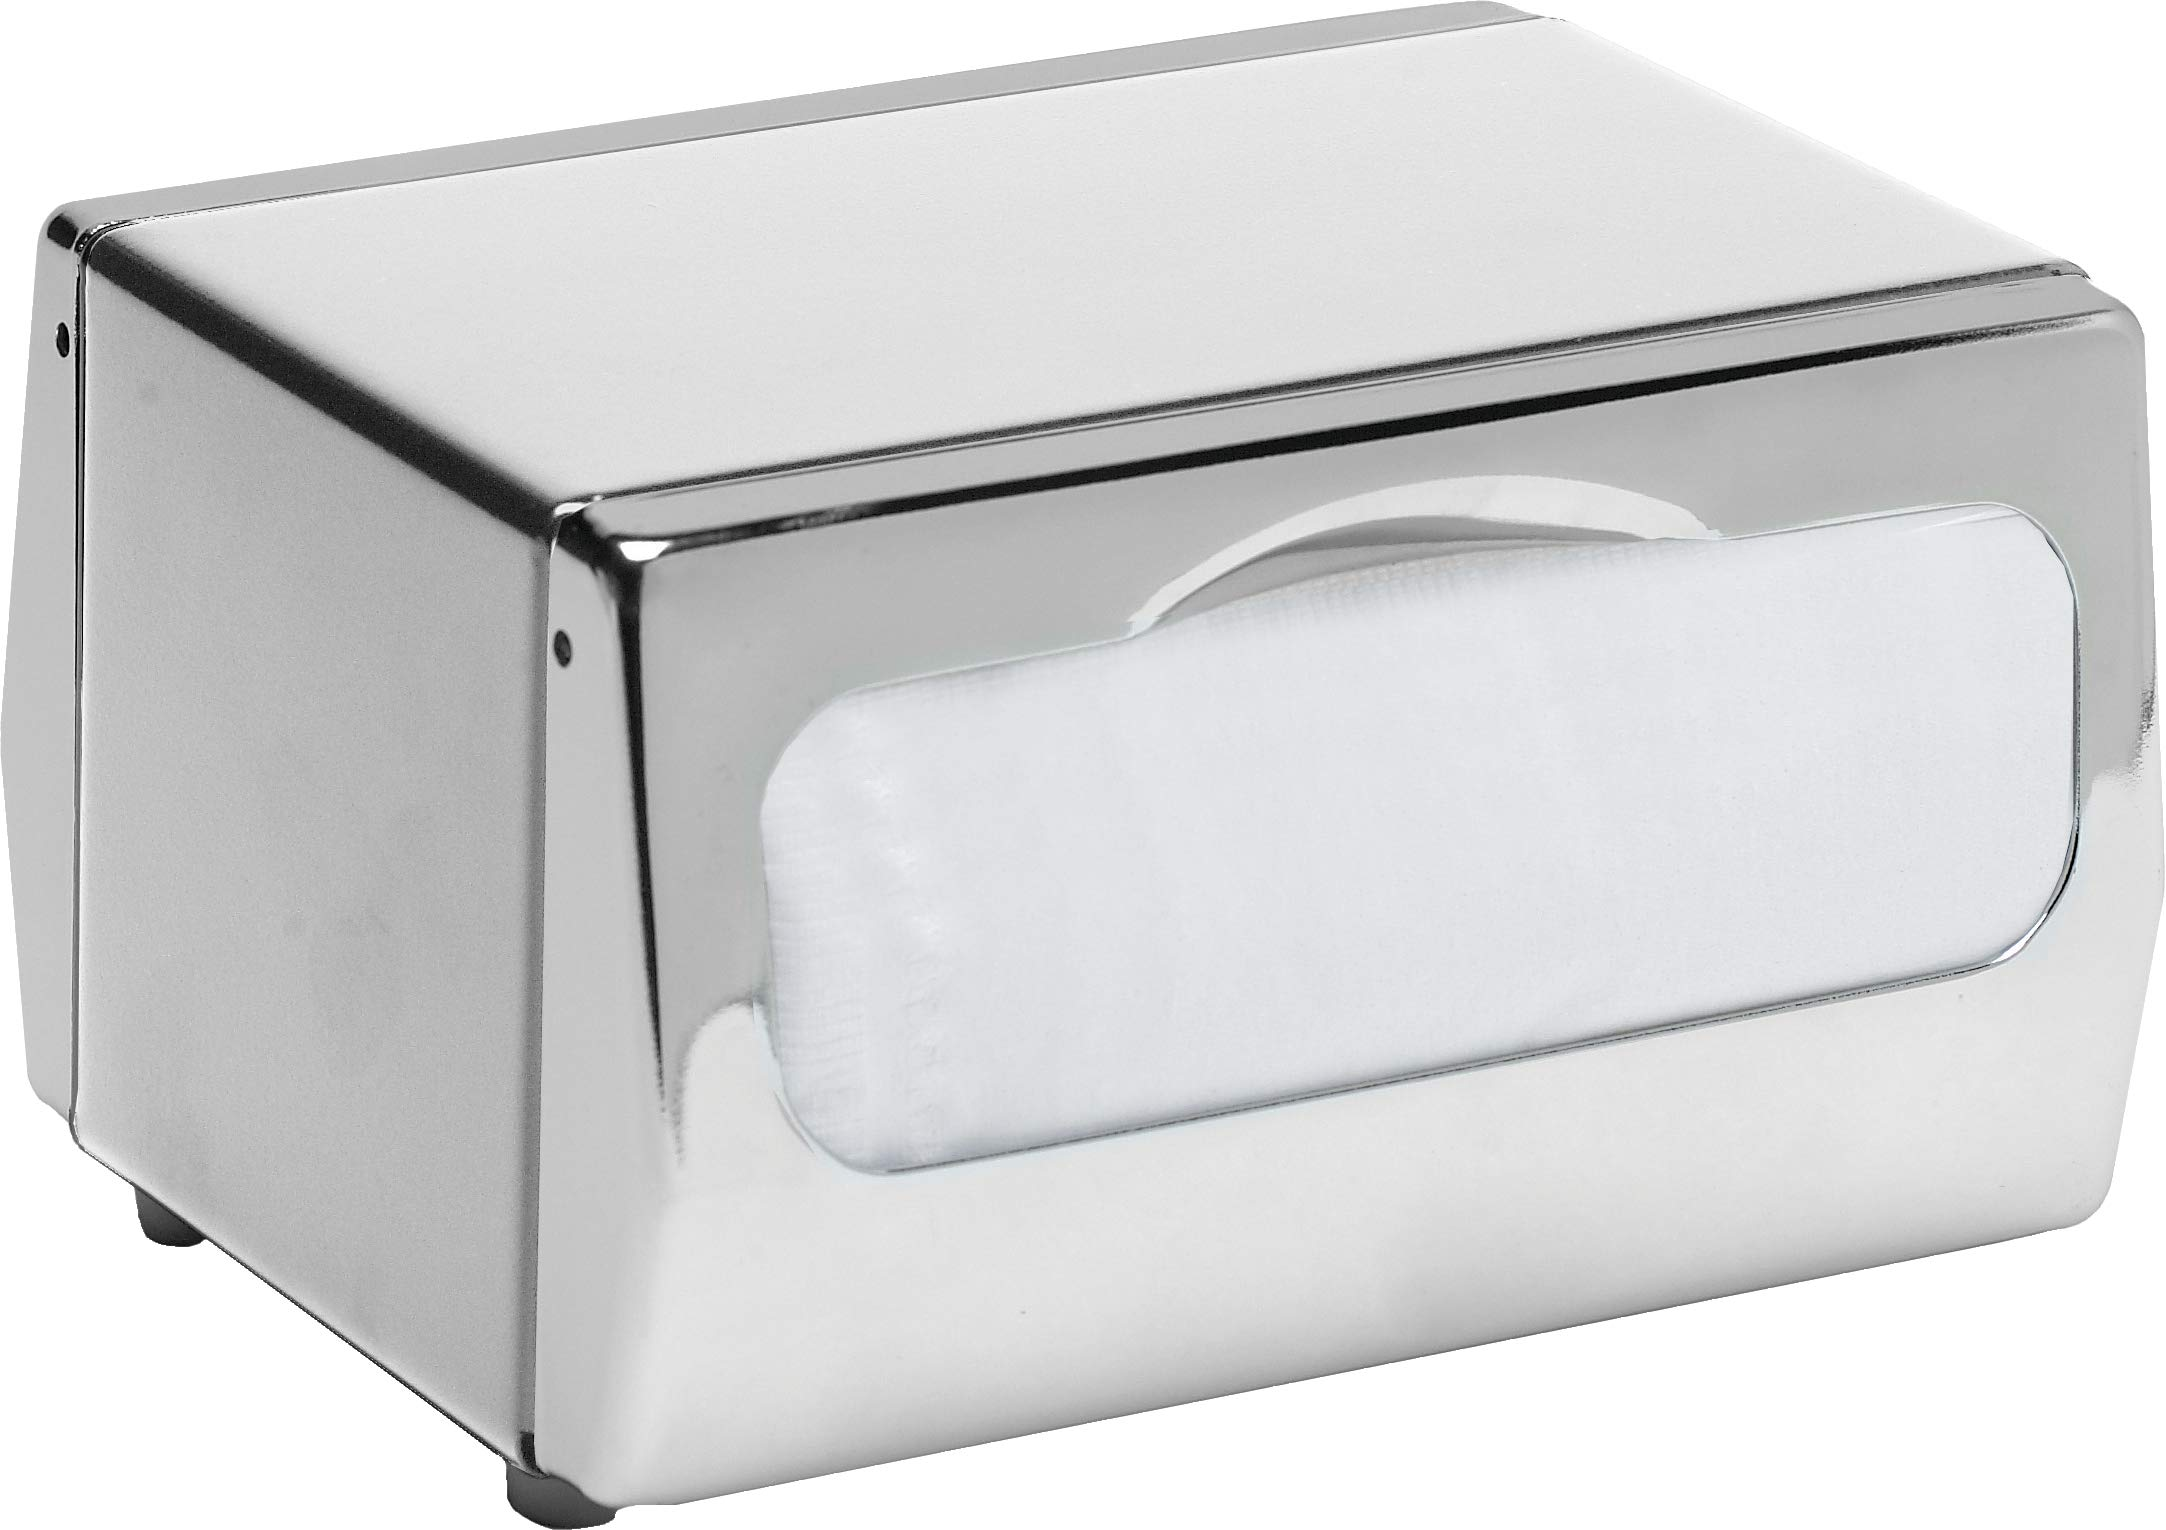 San Jamar H4000 Steel Tabletop Minifold Napkin Dispenser, 170 Capacity, 7-3/4'' Width x 4-1/2'' Height x 6'' Depth, Chrome